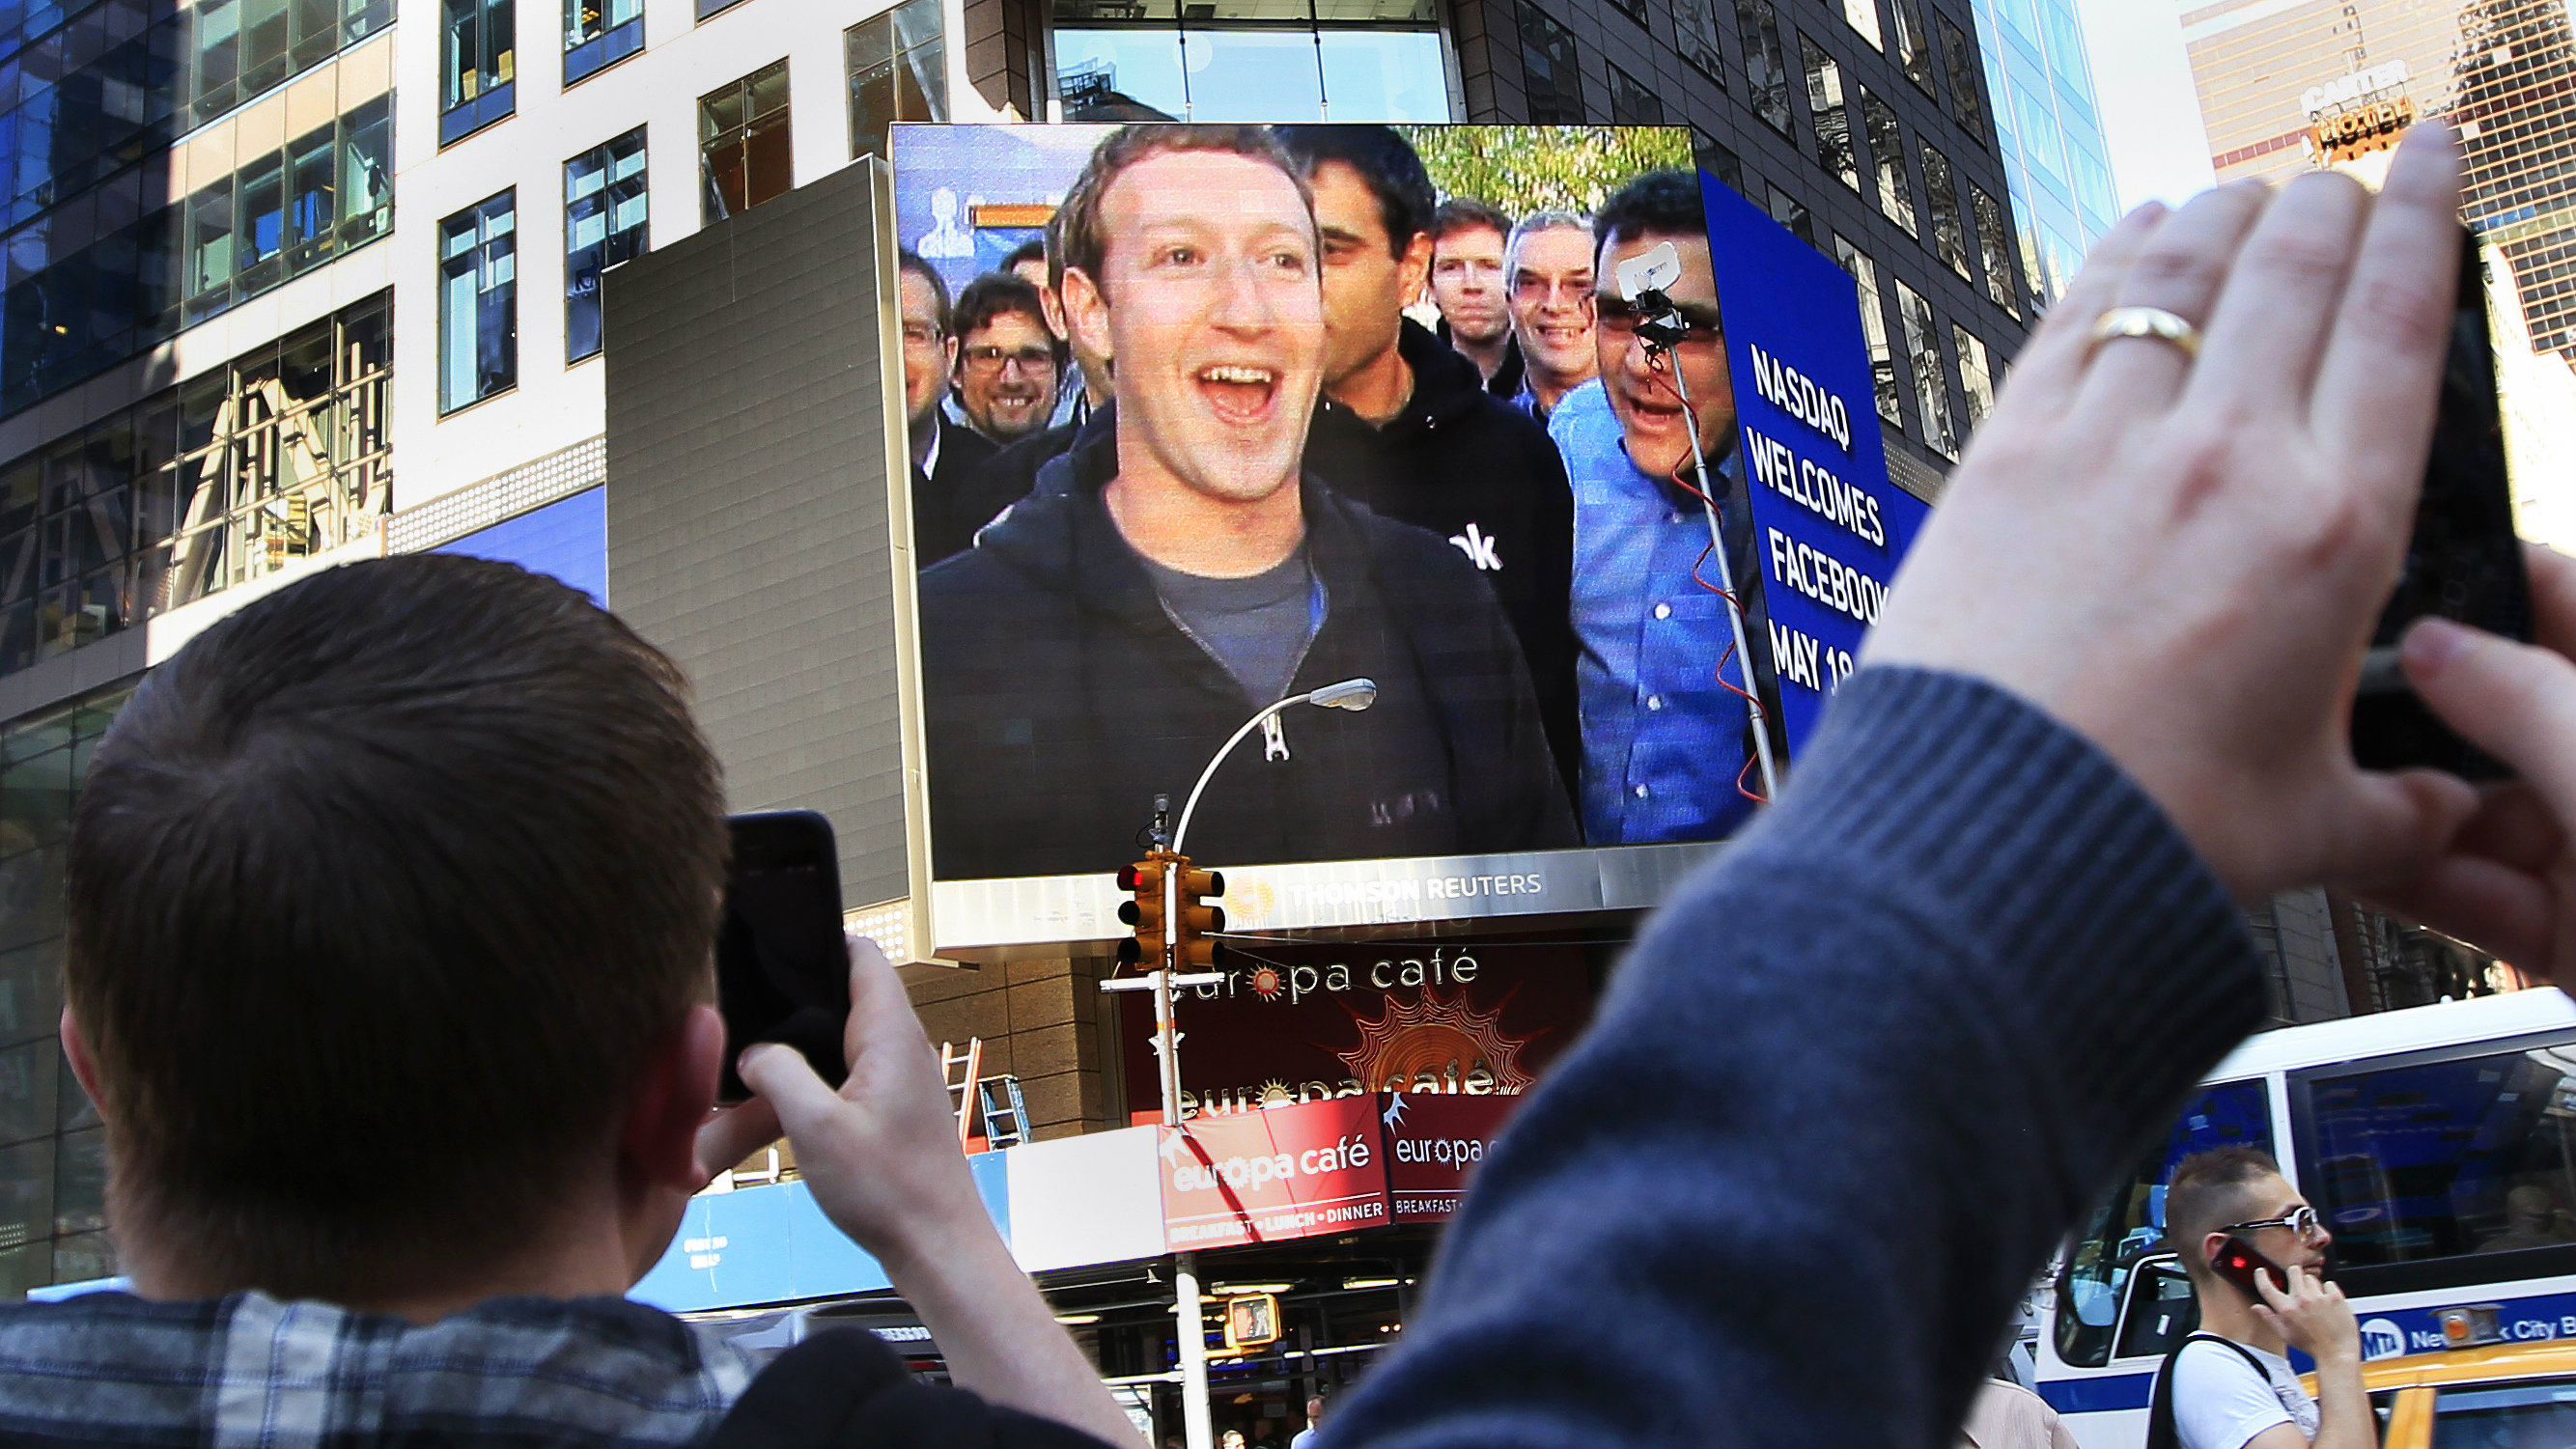 zuckerberg on big screen